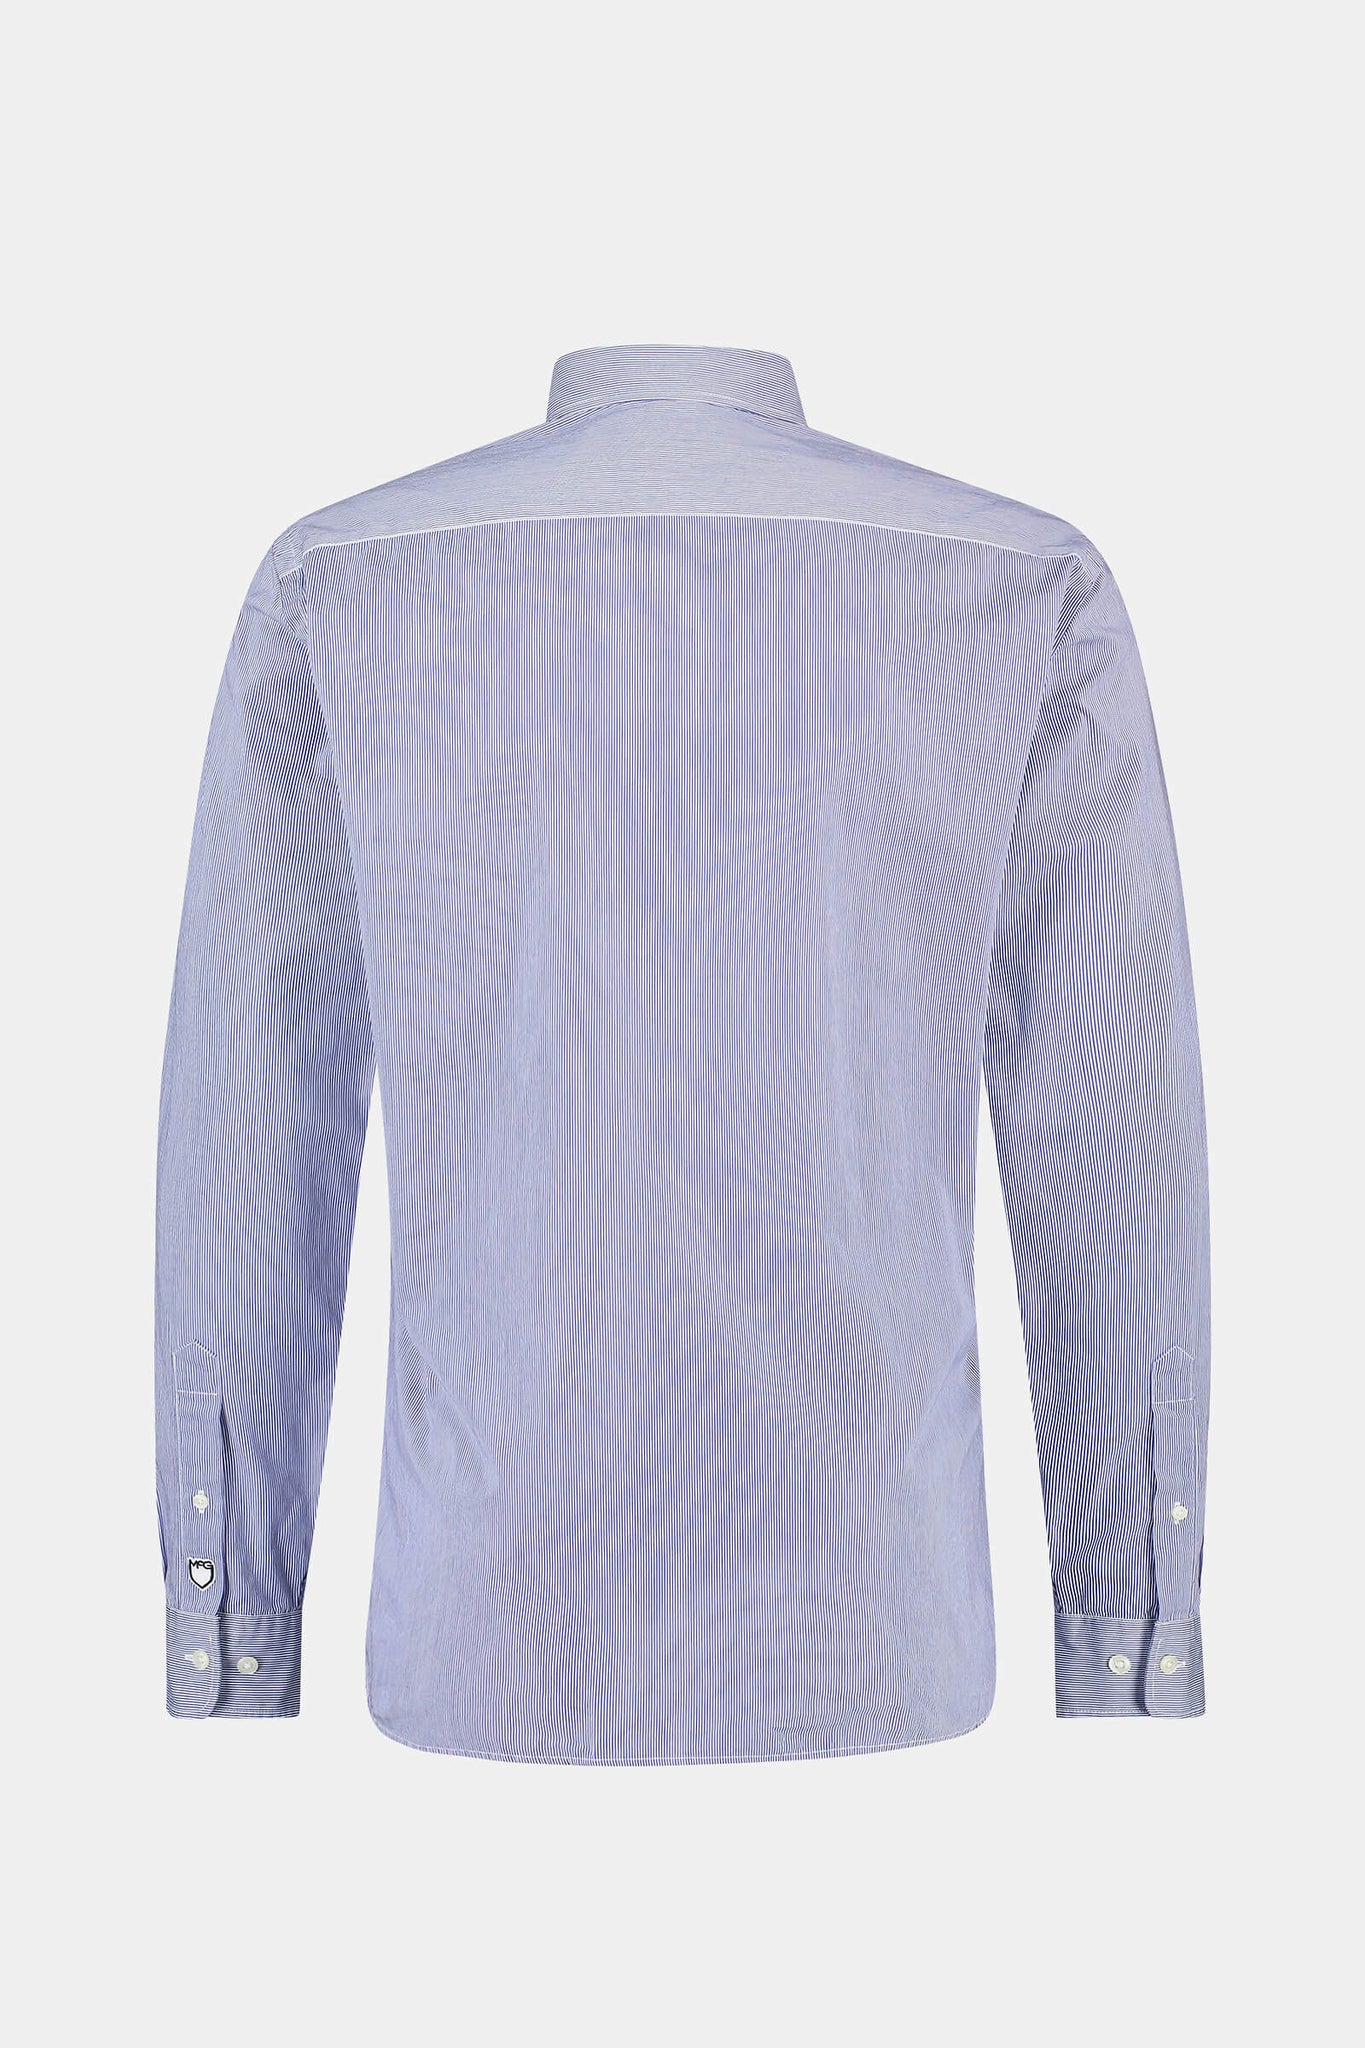 The McG RF Fine Stripe Shirt